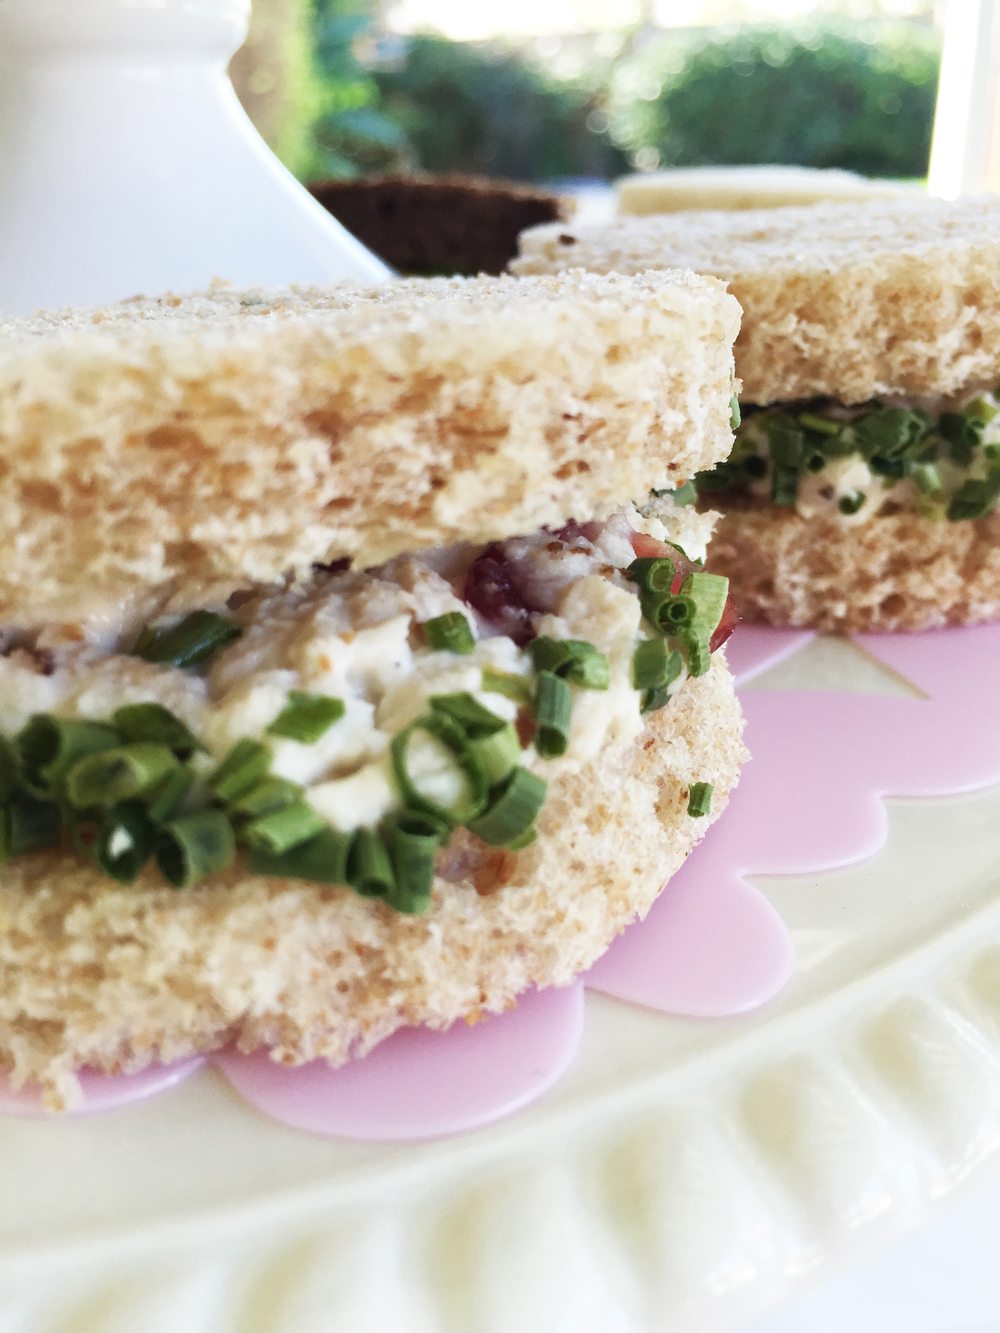 Chicken salad sandwiches with dried cranberries, garnished with chives.